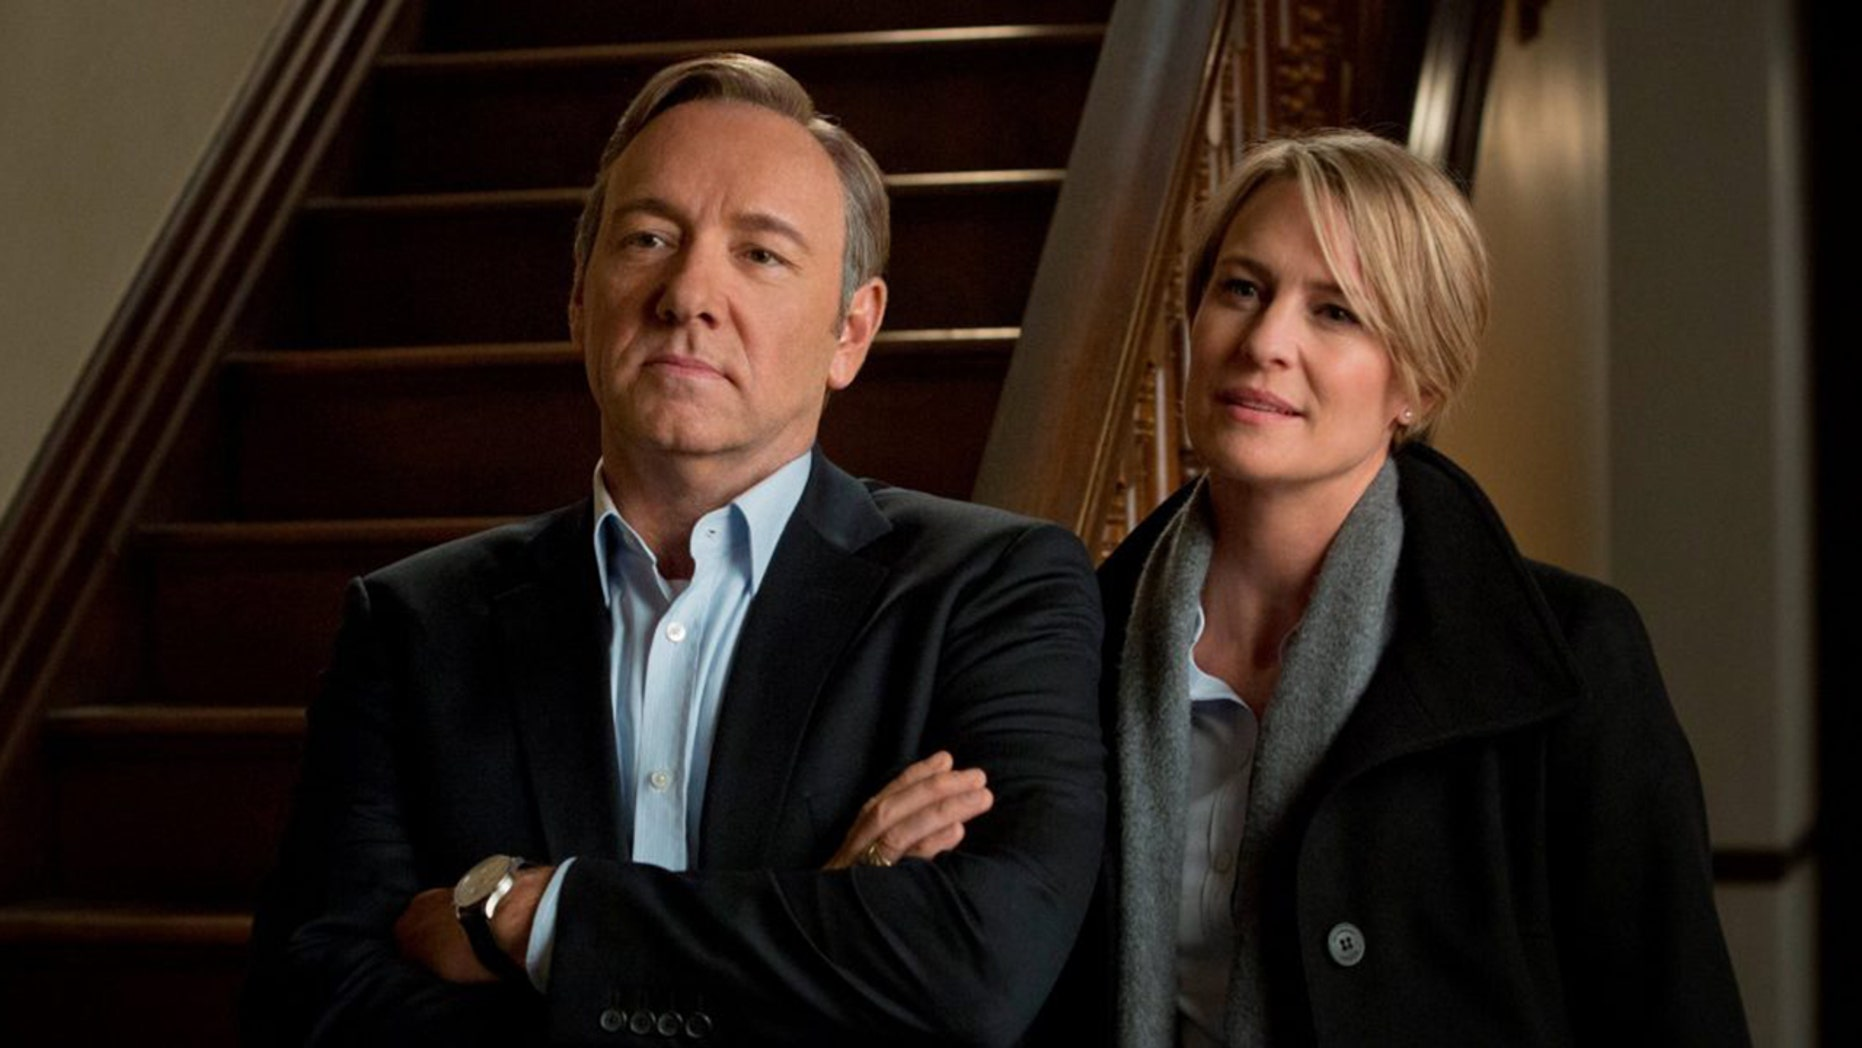 """Kevin Spacey and Robin Wright as Frank Underwood and Claire Underwood, respectively, in the Netflix show """"House of Cards."""""""